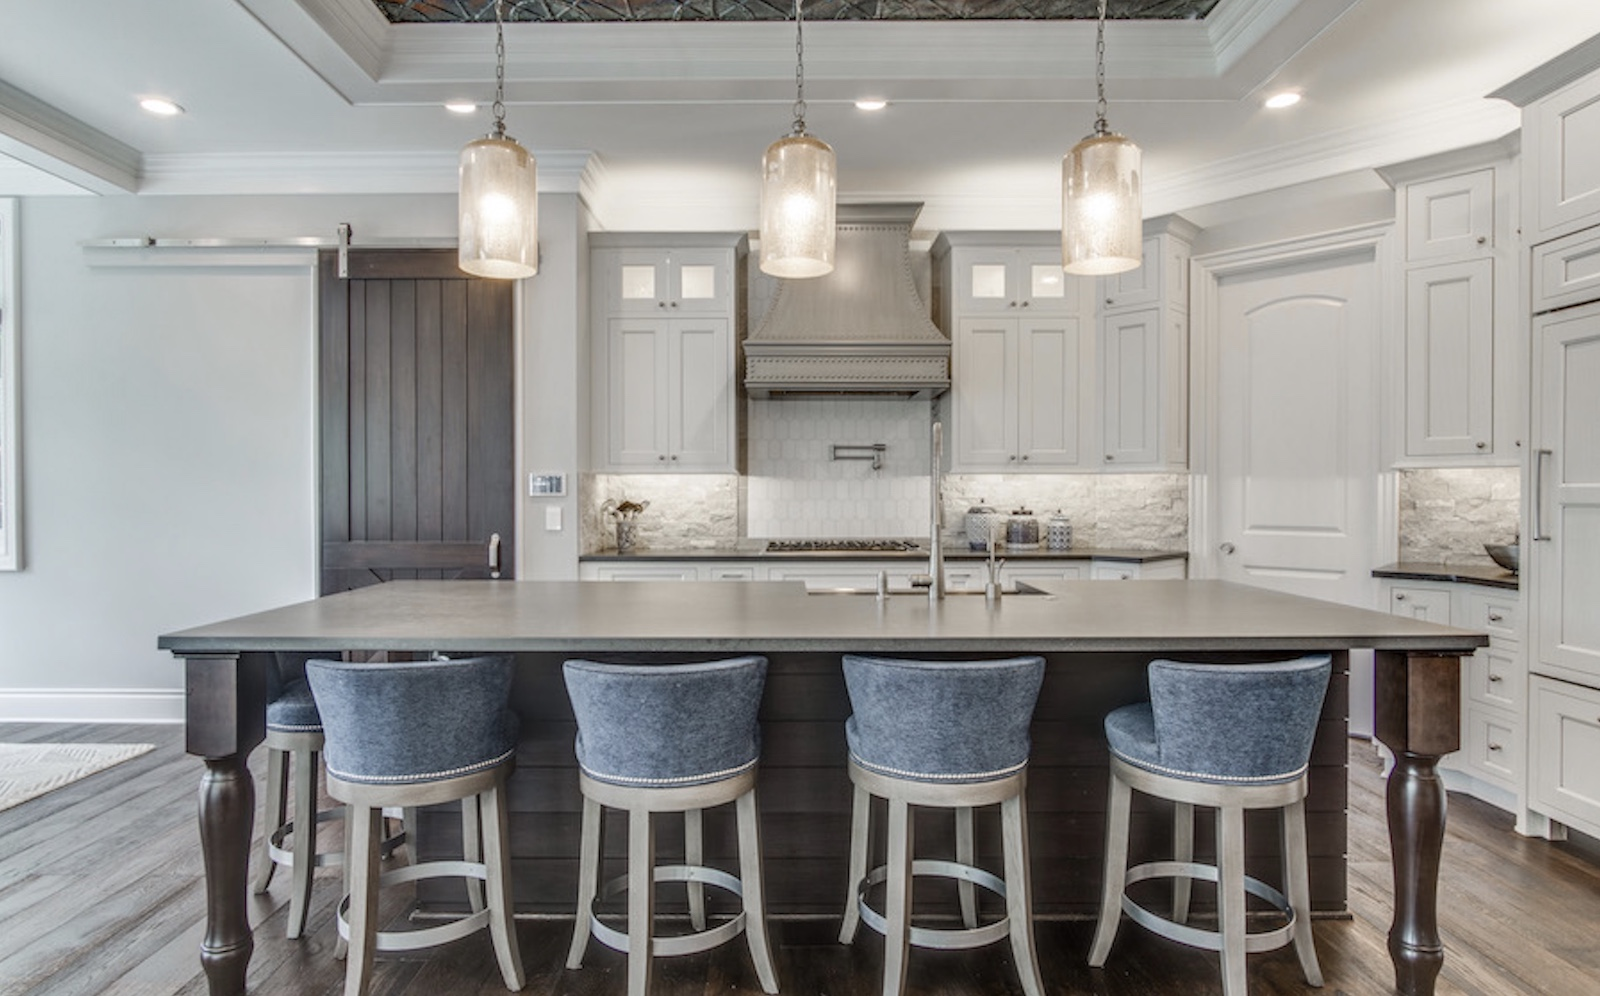 The kitchen island in Jaime, designed by TK Design & Associates